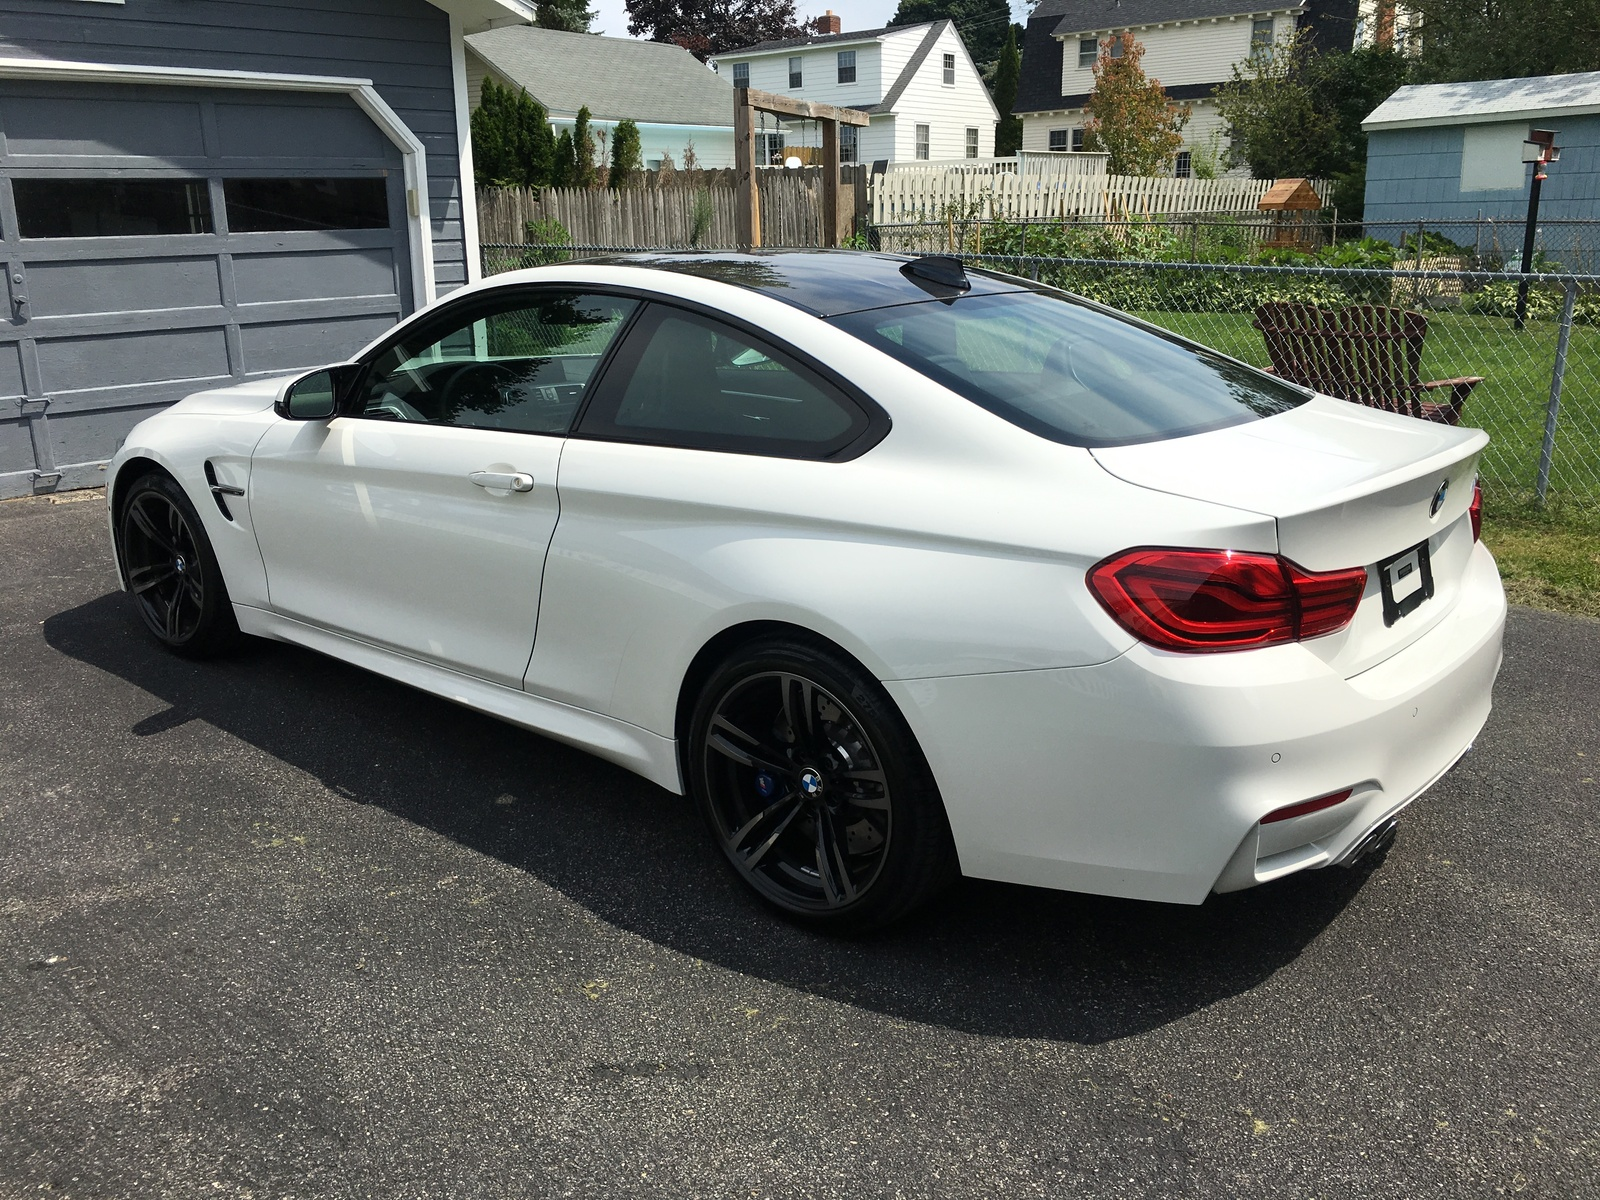 Picture of 2018 BMW M4 Coupe